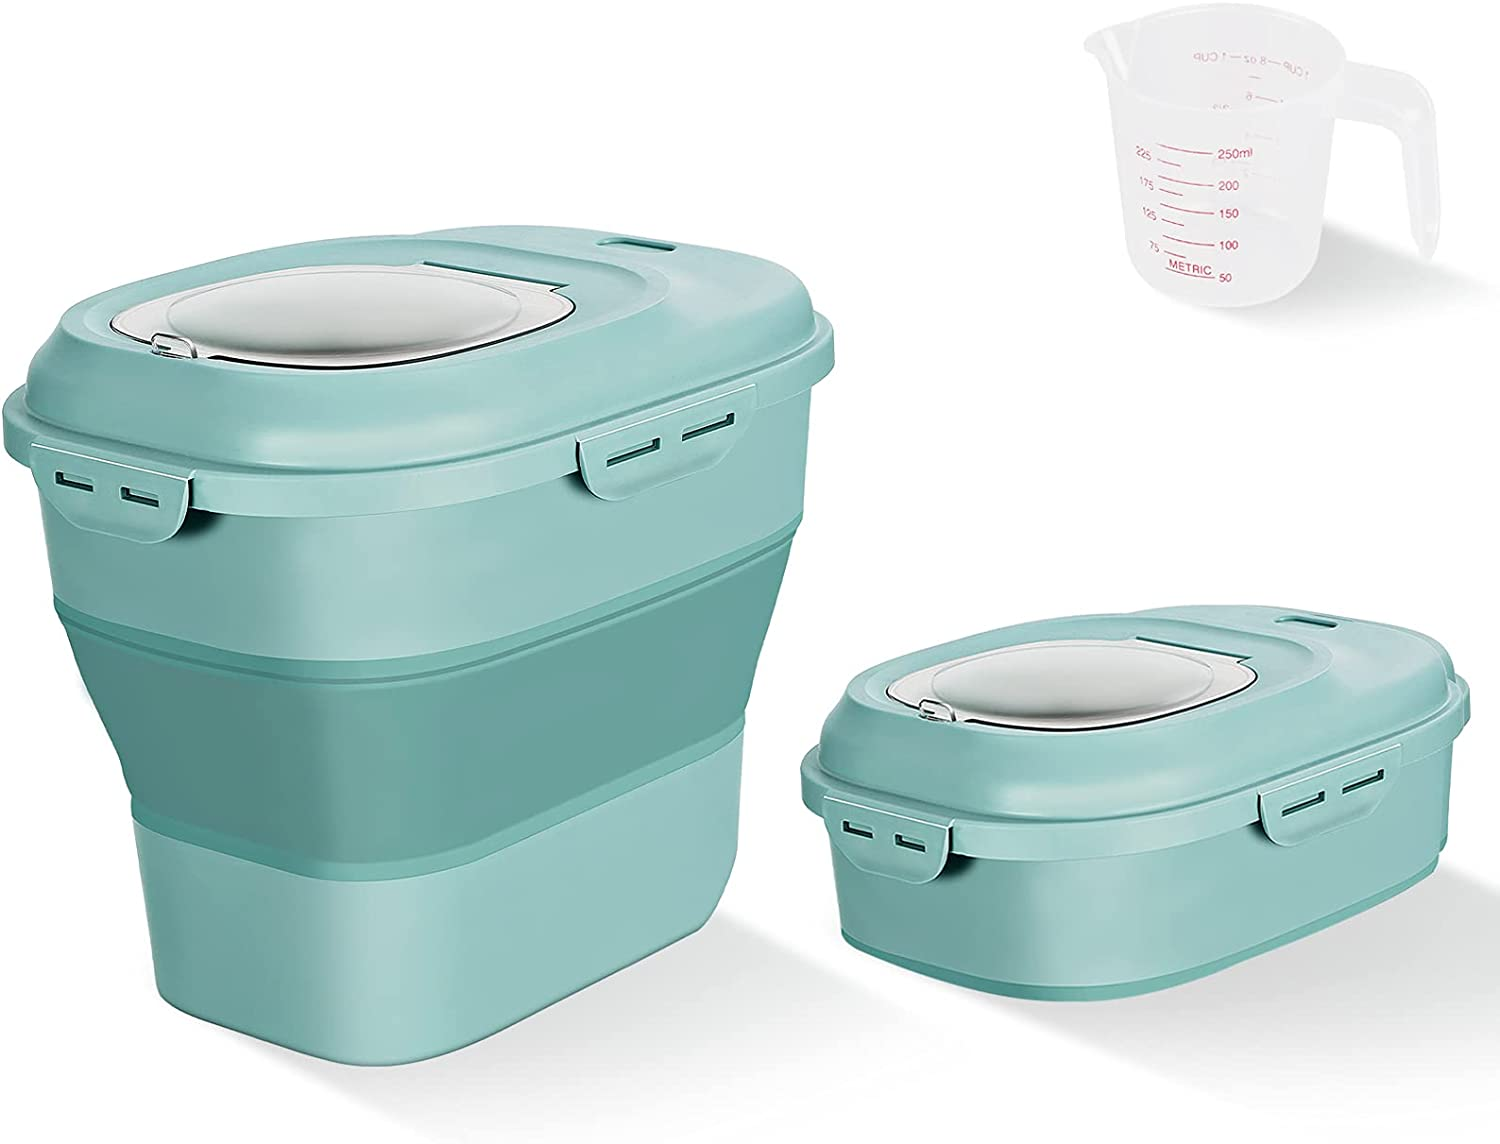 Cereal Rice Food Storage Containers, Collapsible 20 to 50 Lbs Dispenser Bin with Rolling Wheel Airtight Locking Lid, Dog Pet Cat Flour Sugar Plastic Leakproof Sealable Large Kitchen Pantry Holder